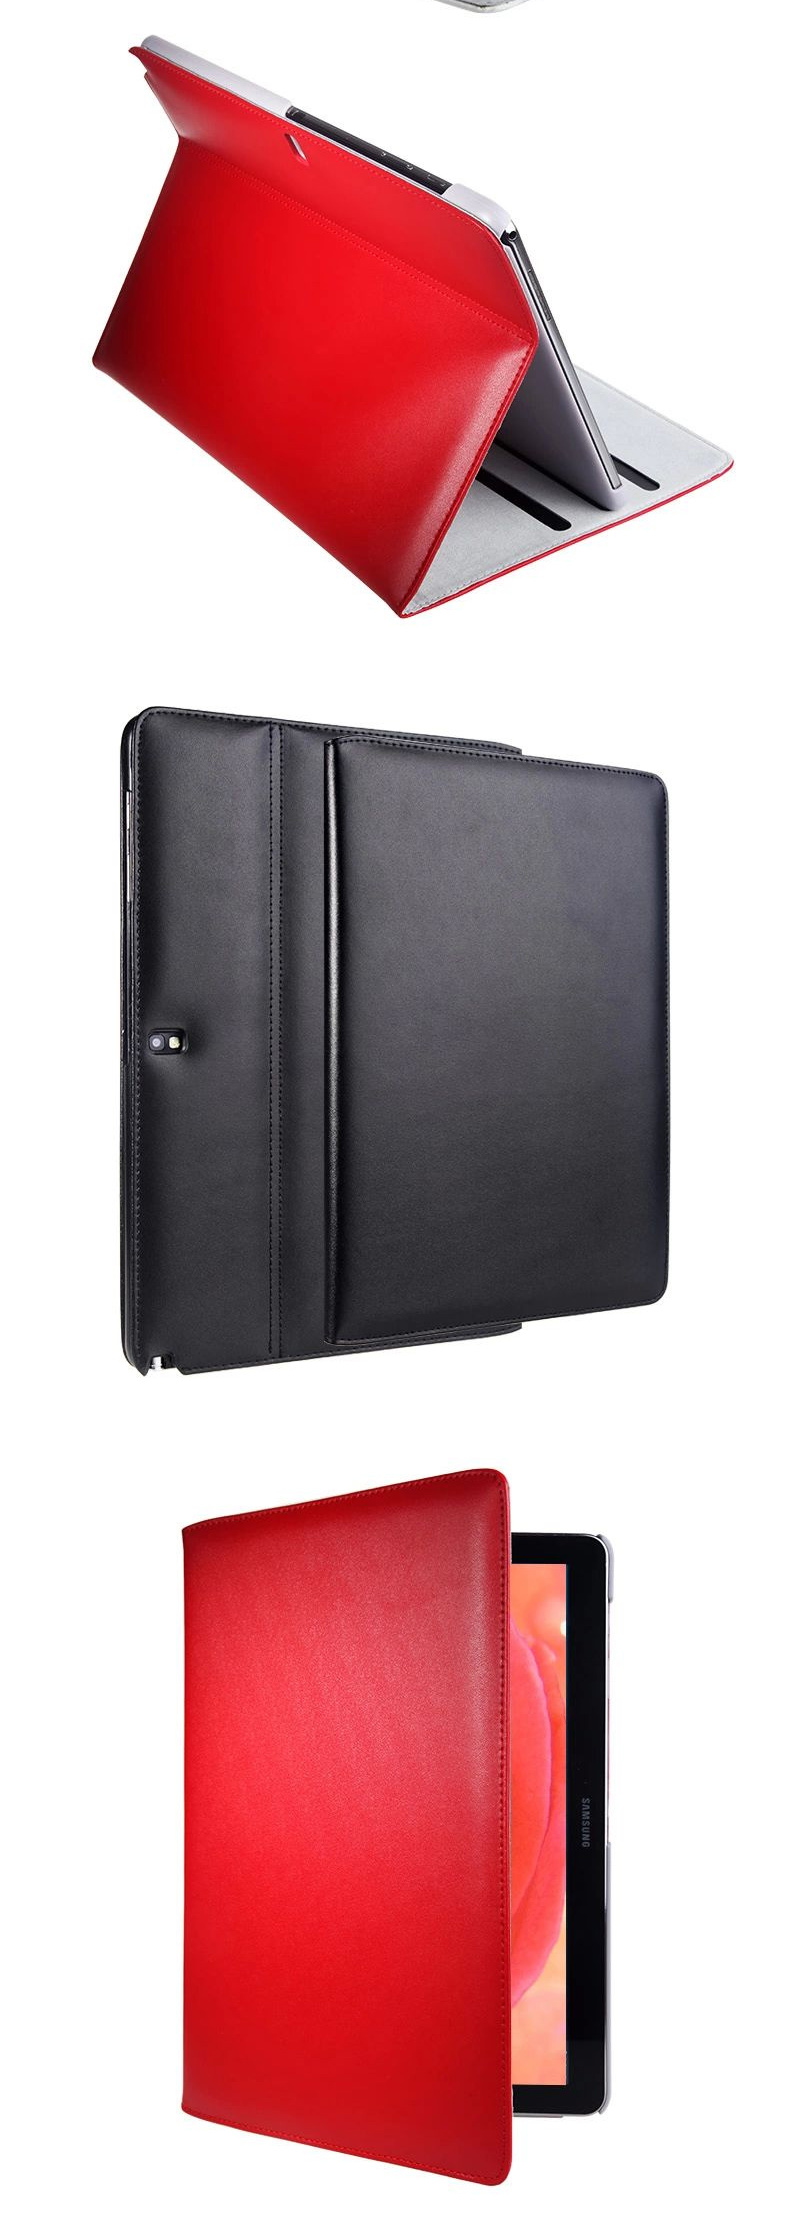 Samsung Galaxy Note Pro 12.2 P900 P905 Thin Slim Genuine Leather Sleeve Holsters